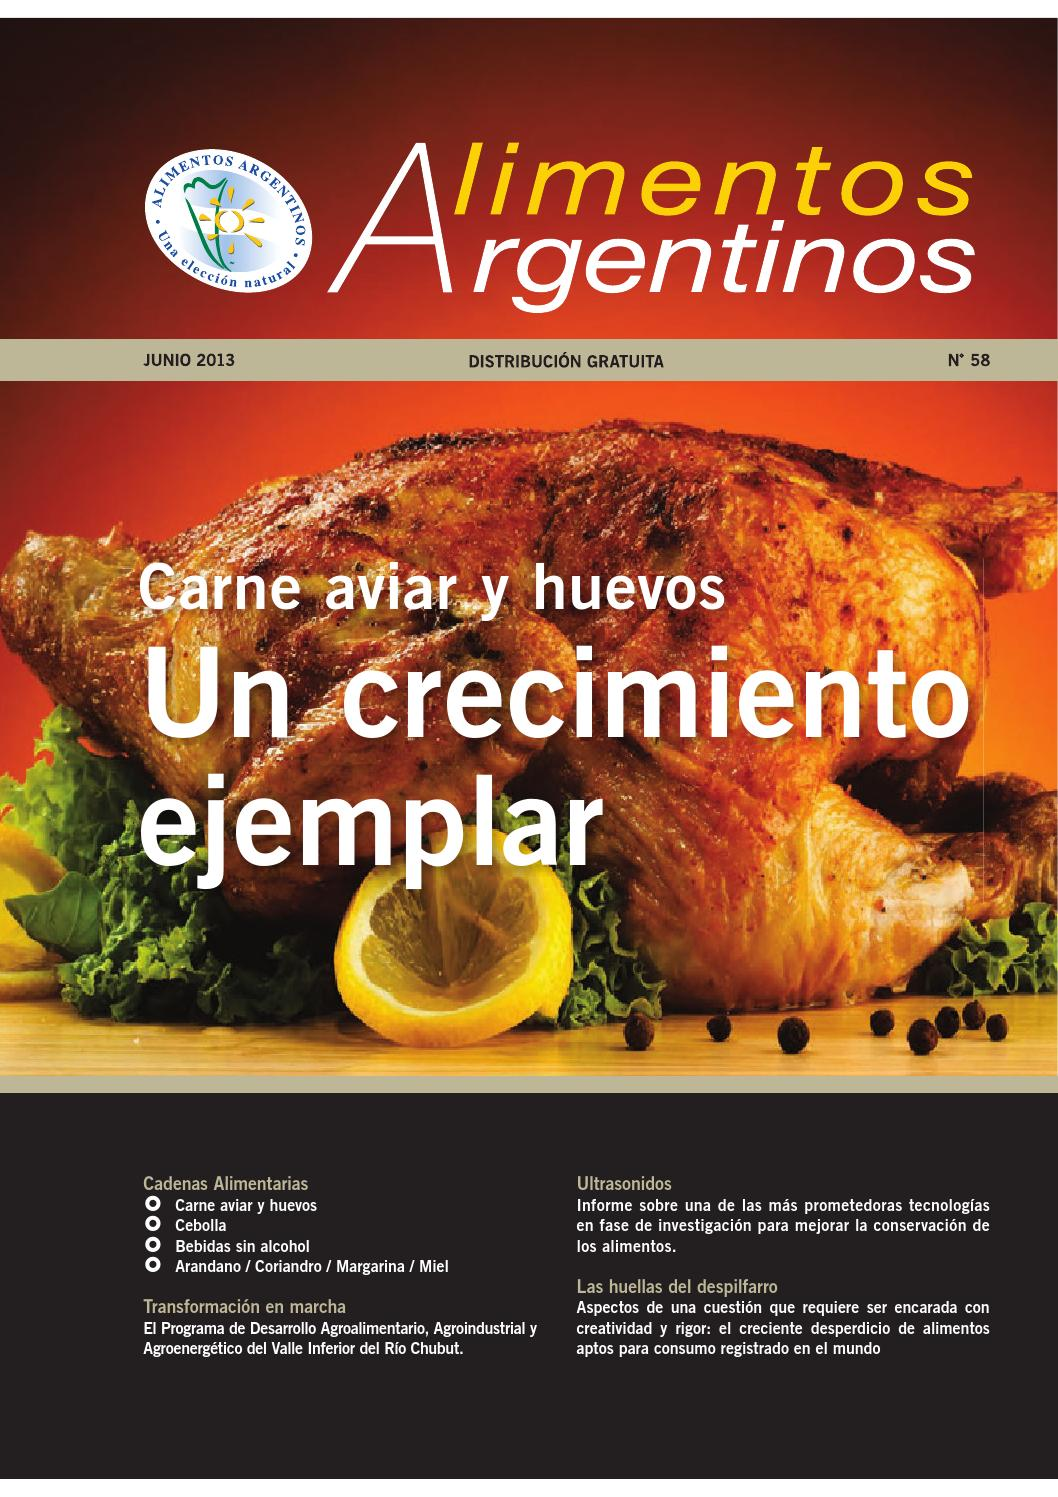 Issuu revista alimentos argentinos n 58 by alimentos for Revistas del espectaculo argentino